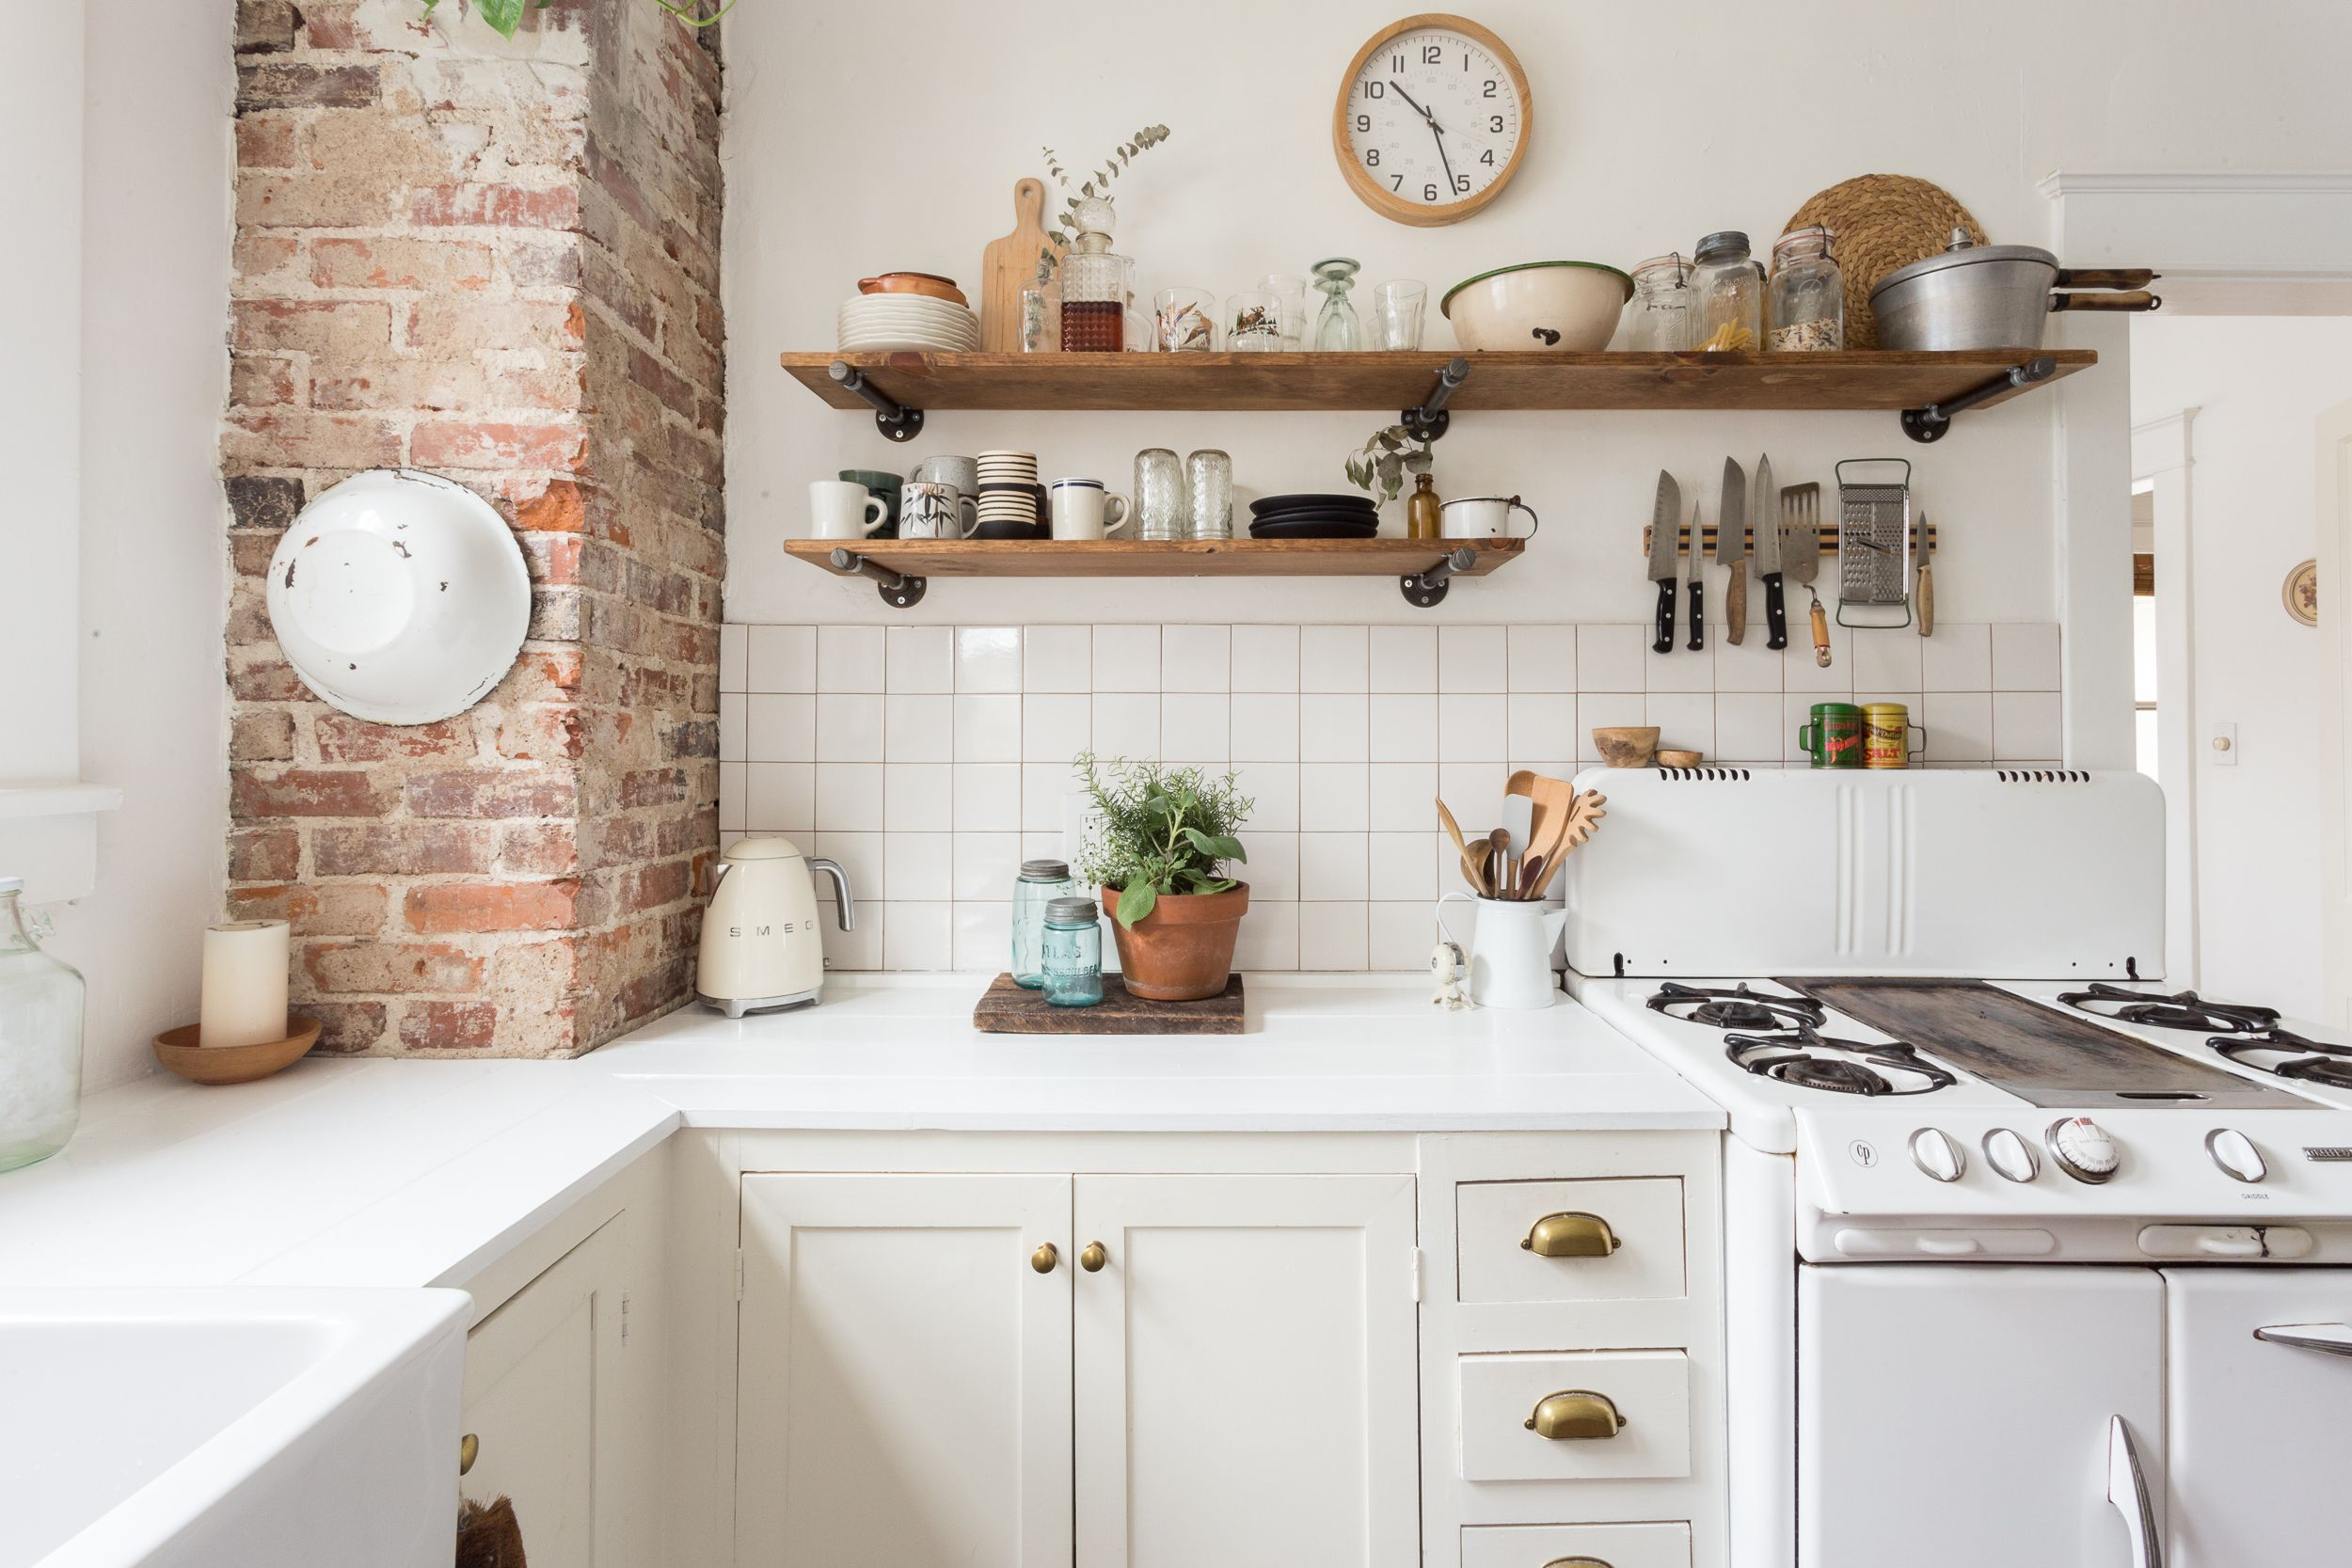 Here's How to Find Cheap Kitchen Cabinets That Won't Compromise Your Style